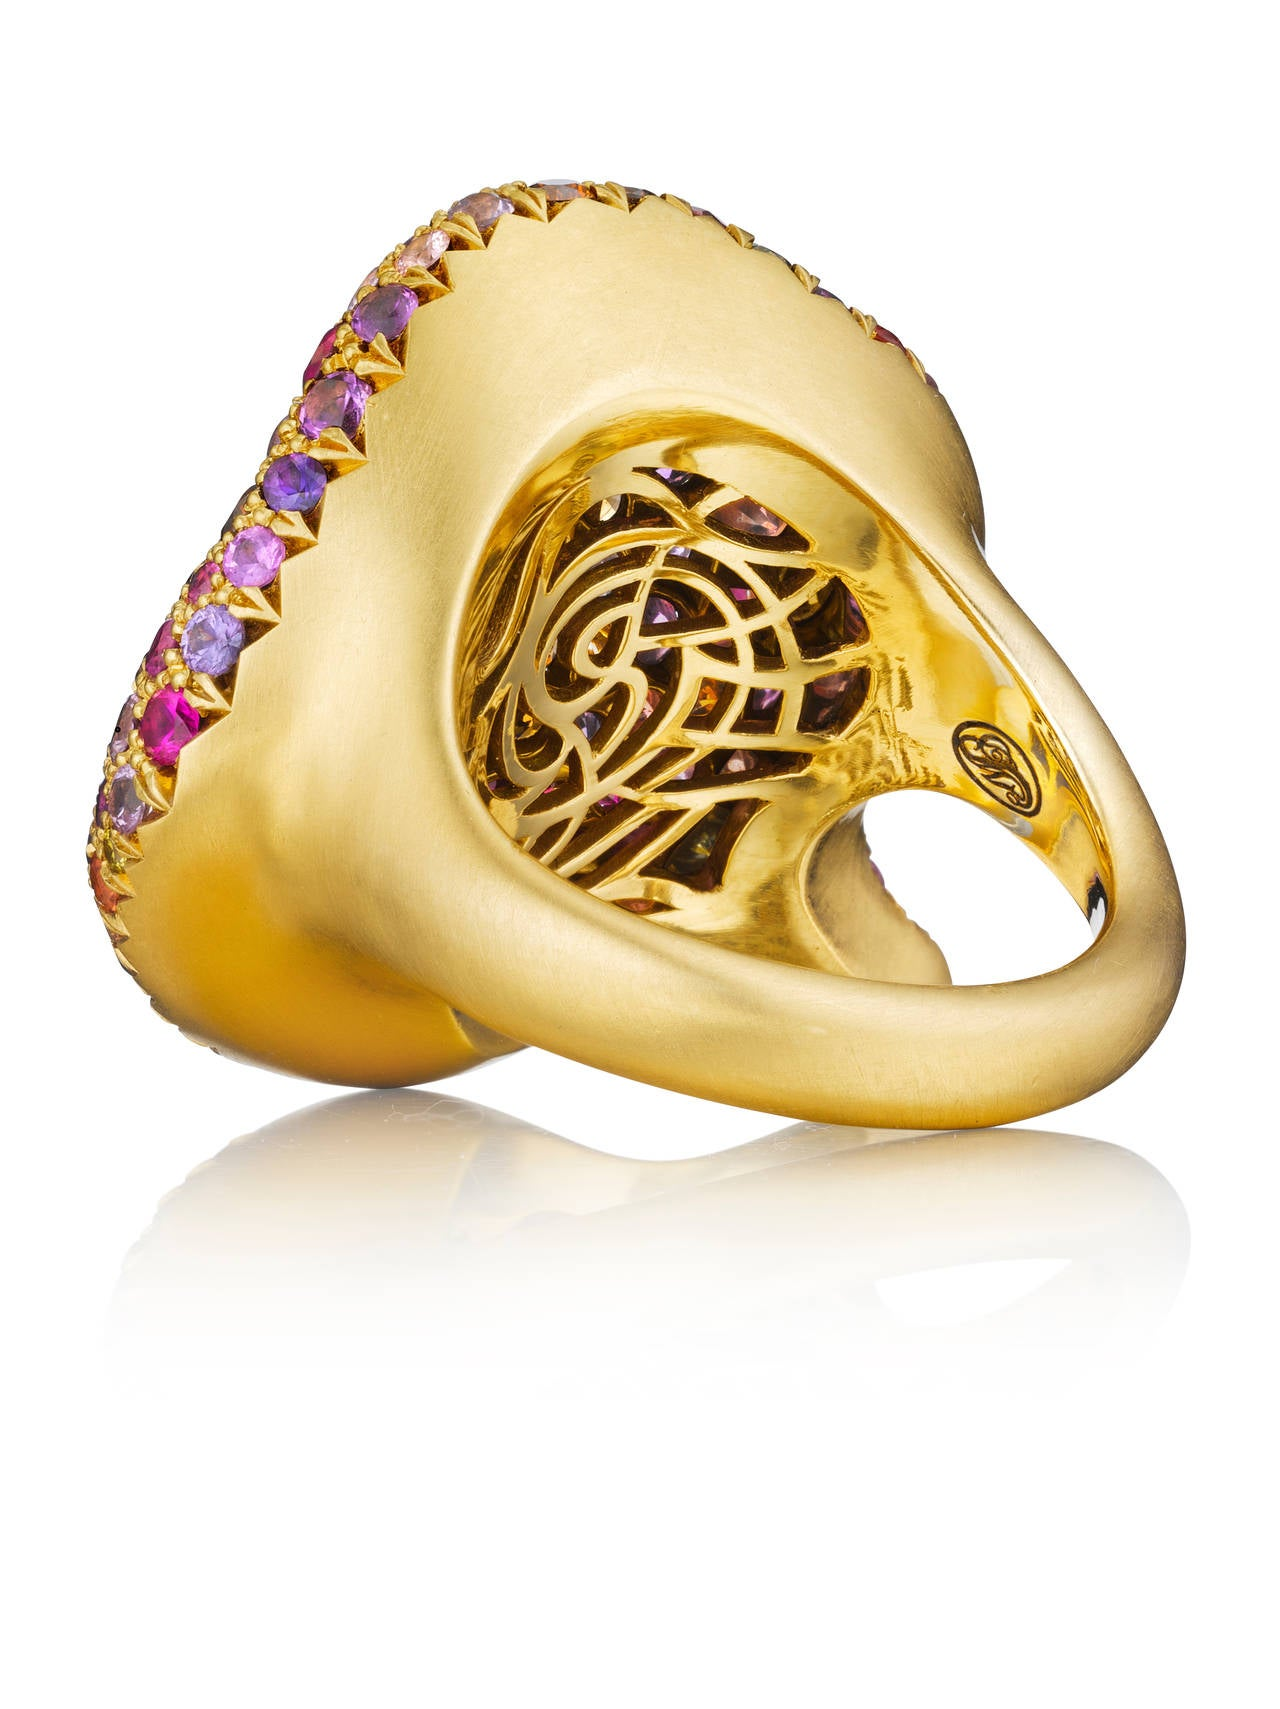 This magnificent one-of-a-kind 20K gold petal ring is set with stunning, vibrant diamonds, amethysts, garnets, rubies, and sapphires. The back of the ring is finished with Naomi Sarna's signature grill.   Internationally award winning designer Naomi